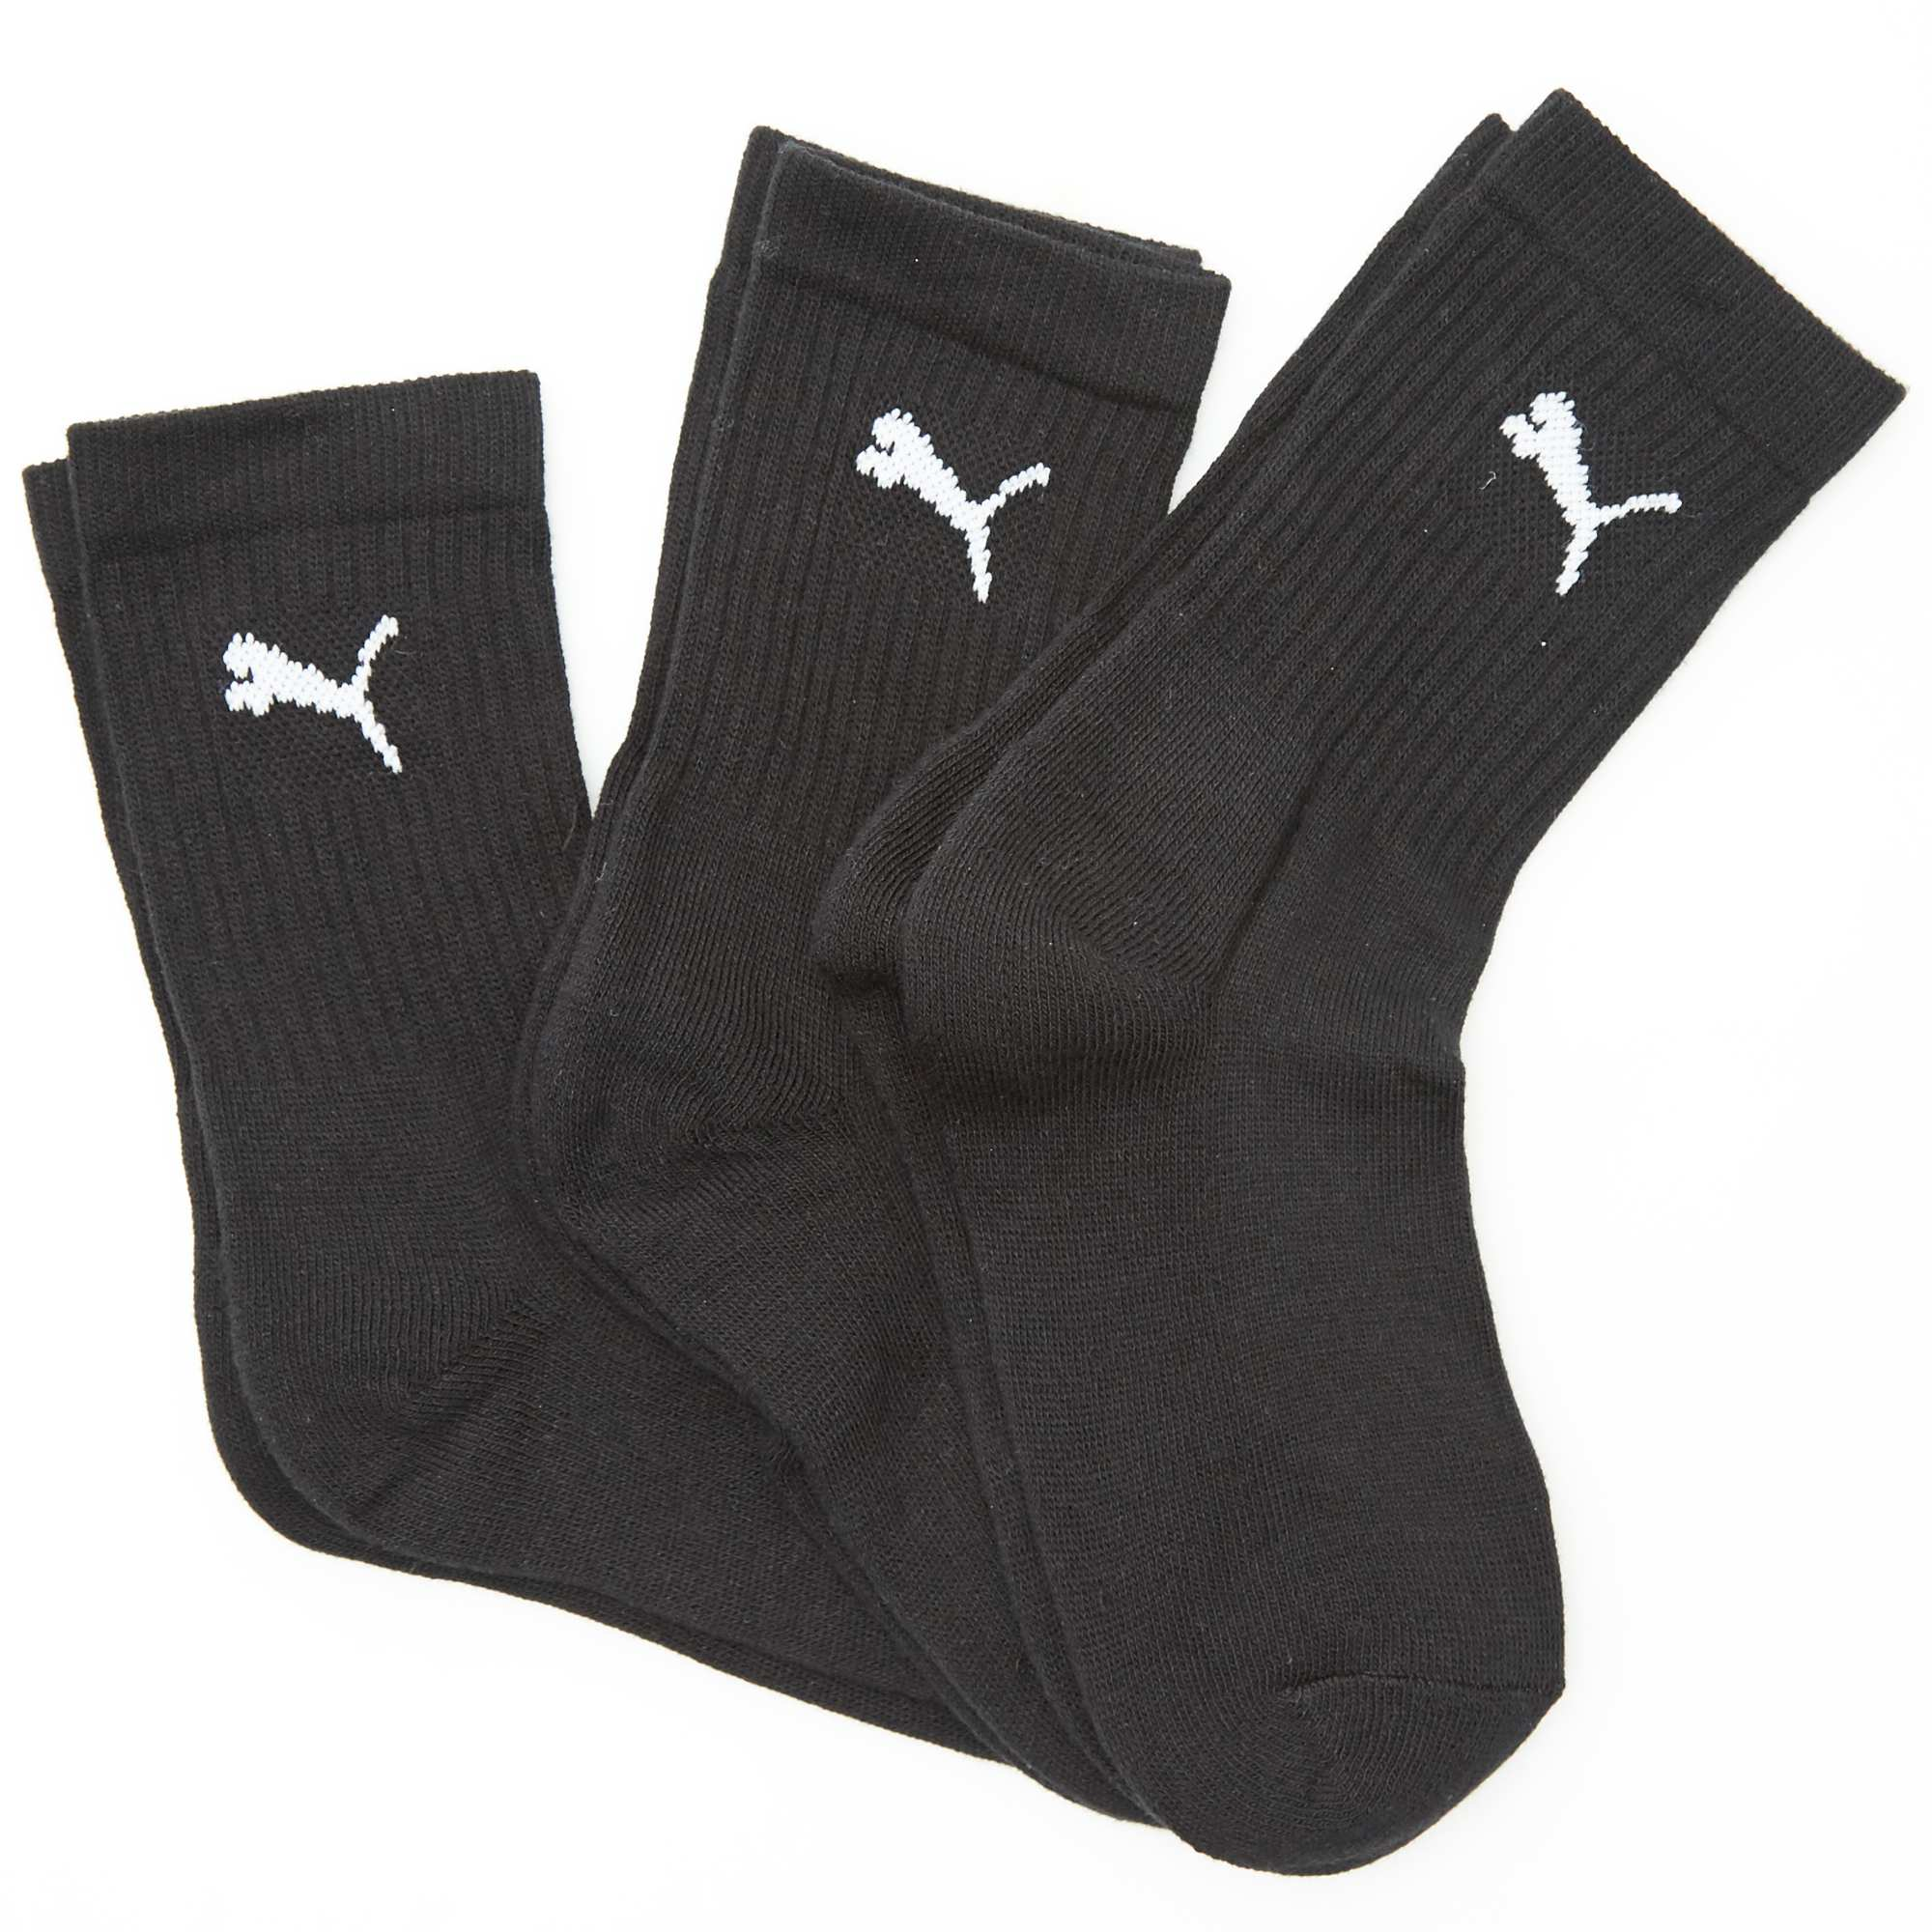 lot de 3 paires de chaussettes de sport 39 puma 39 noir gar on kiabi. Black Bedroom Furniture Sets. Home Design Ideas